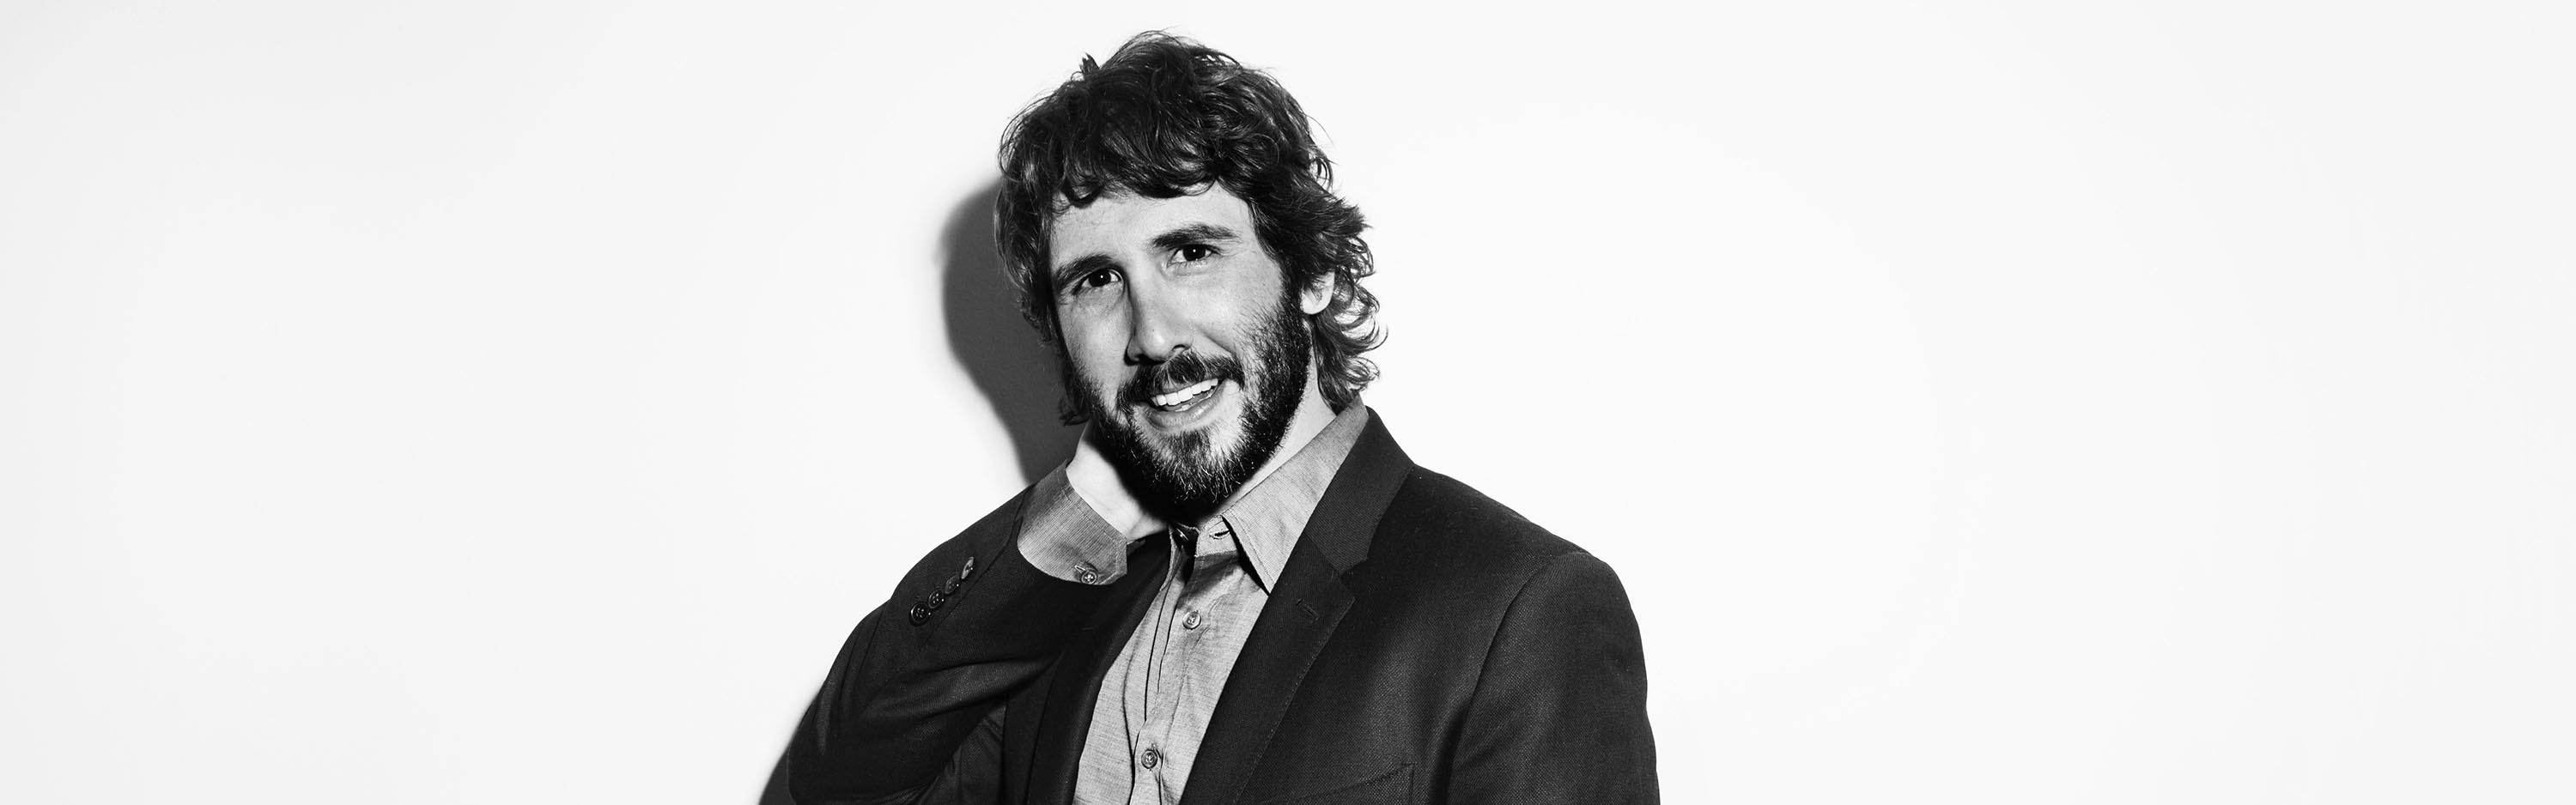 Josh Groban Photo by Taylor Jewell/Invision/AP